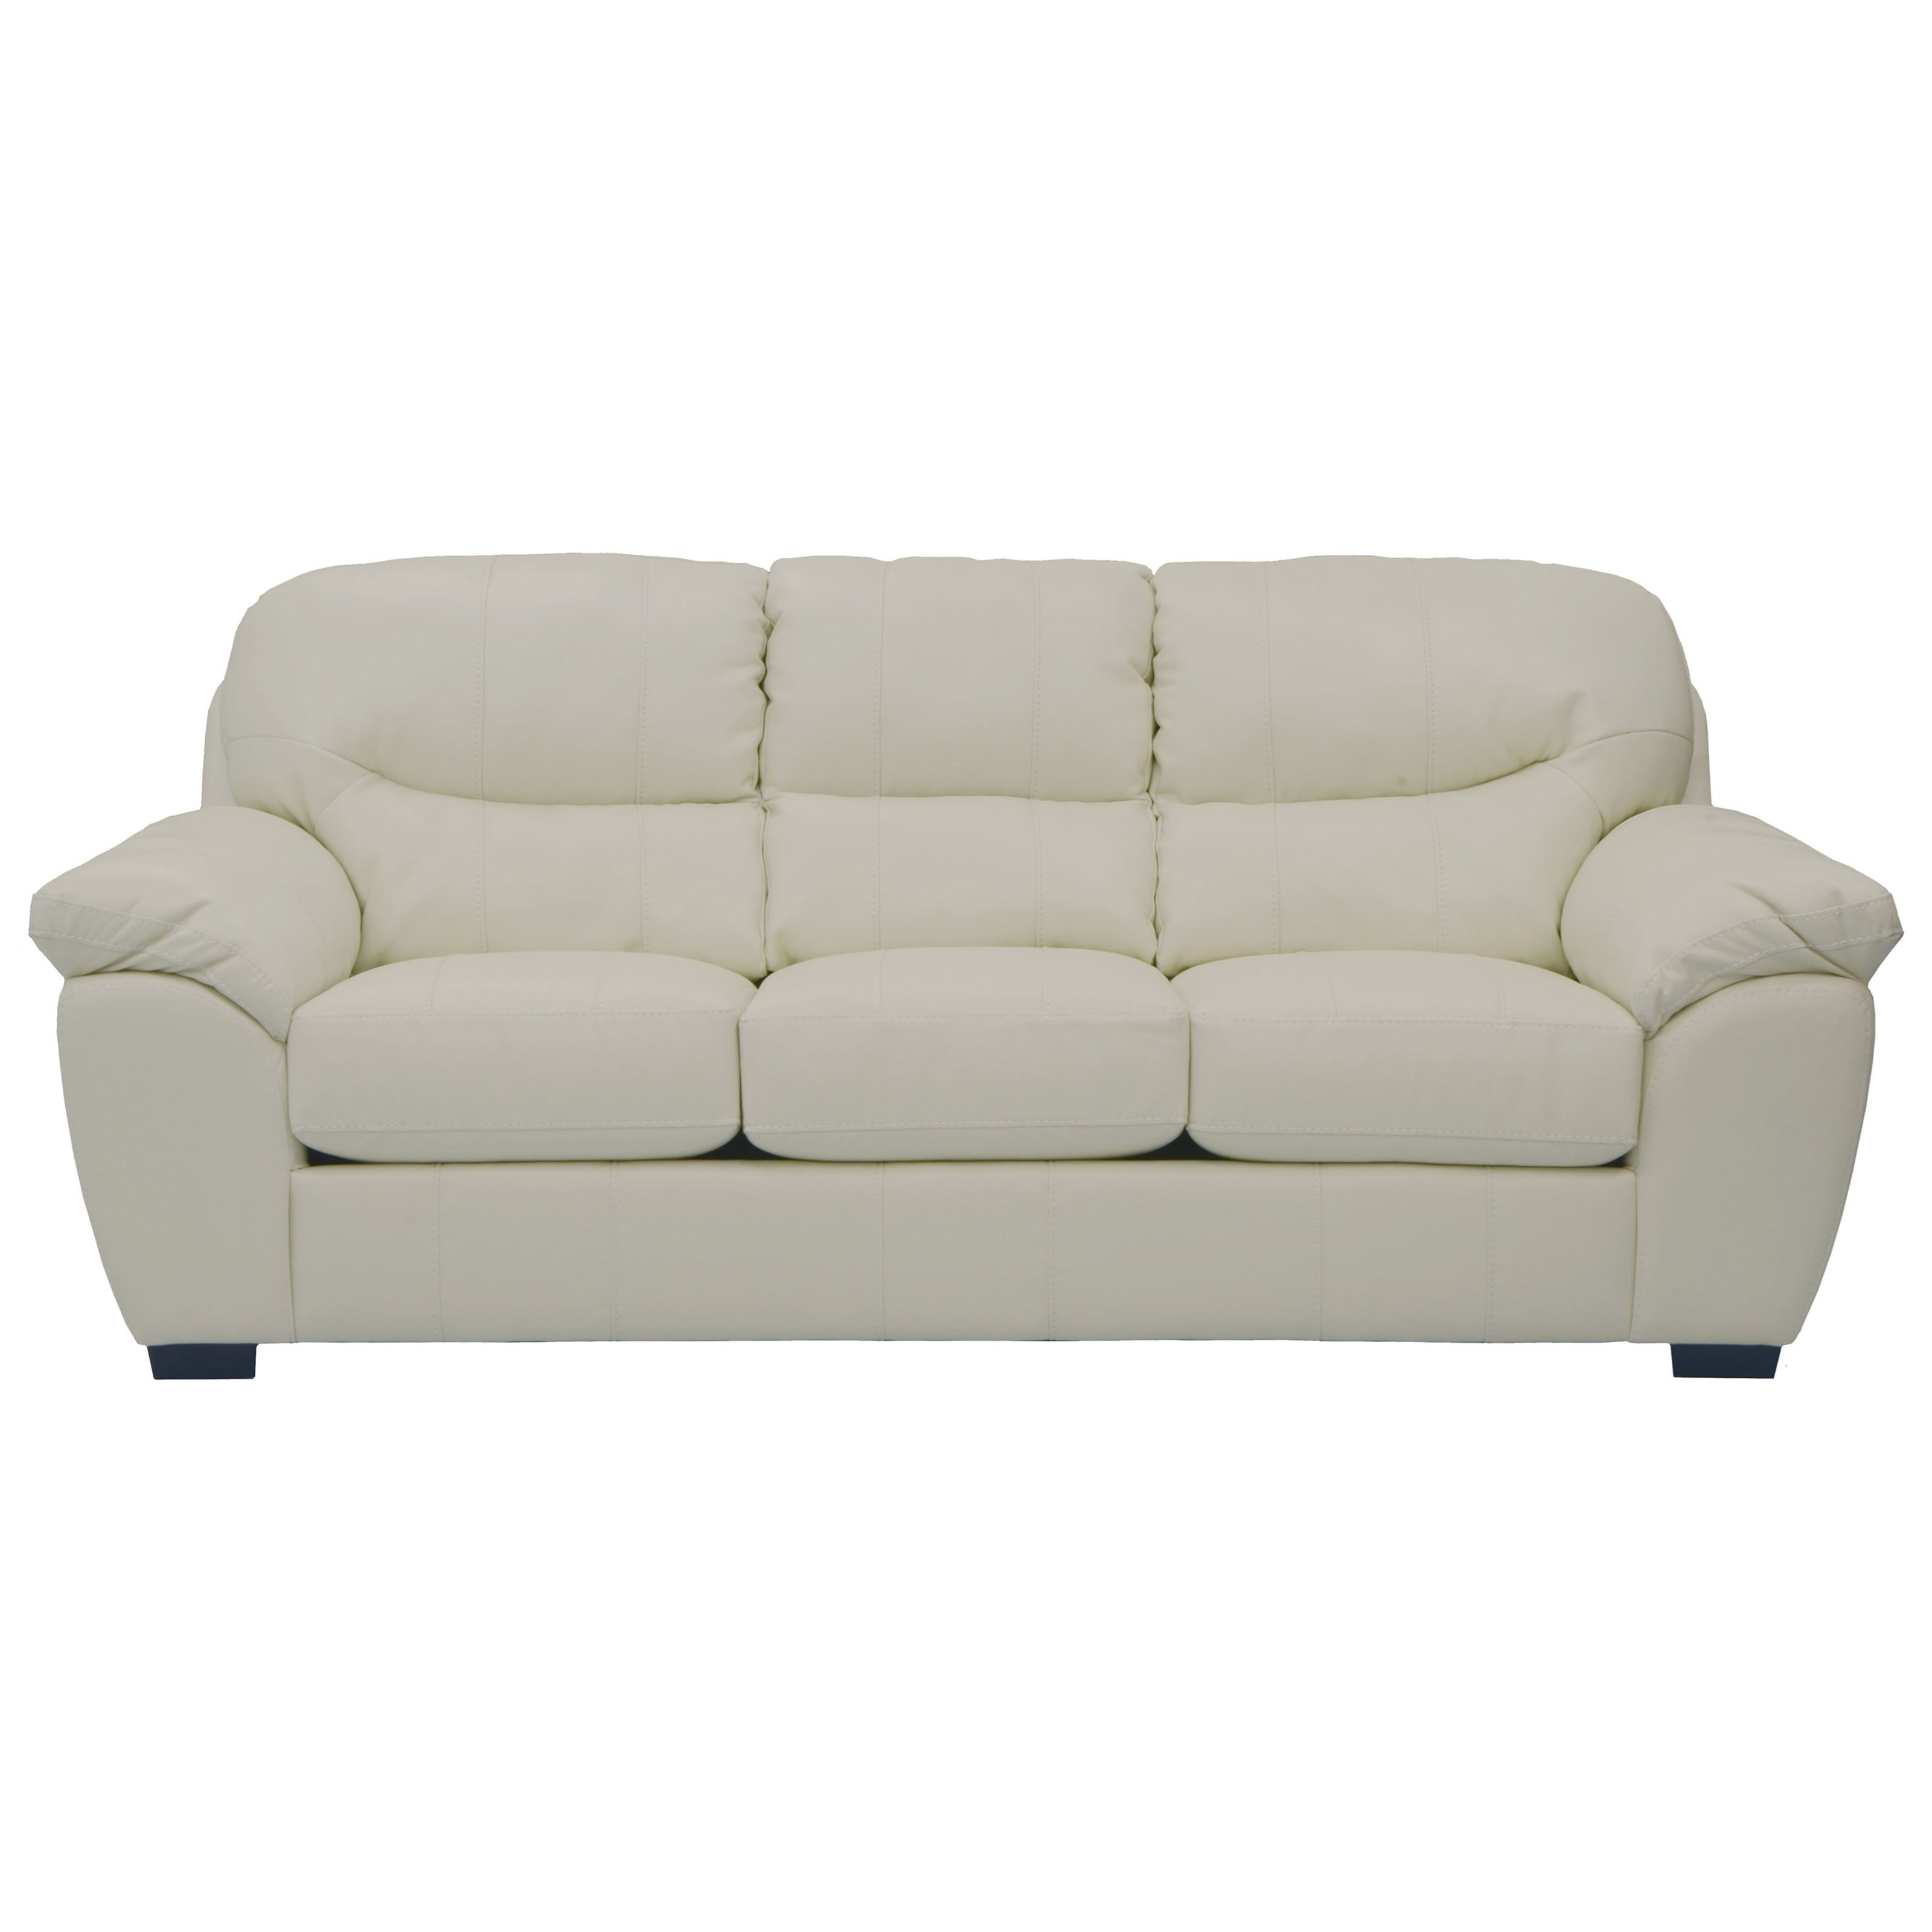 Jackson Furniture Grant Sofa - Item Number: 4453-03-1262-01-3062-01